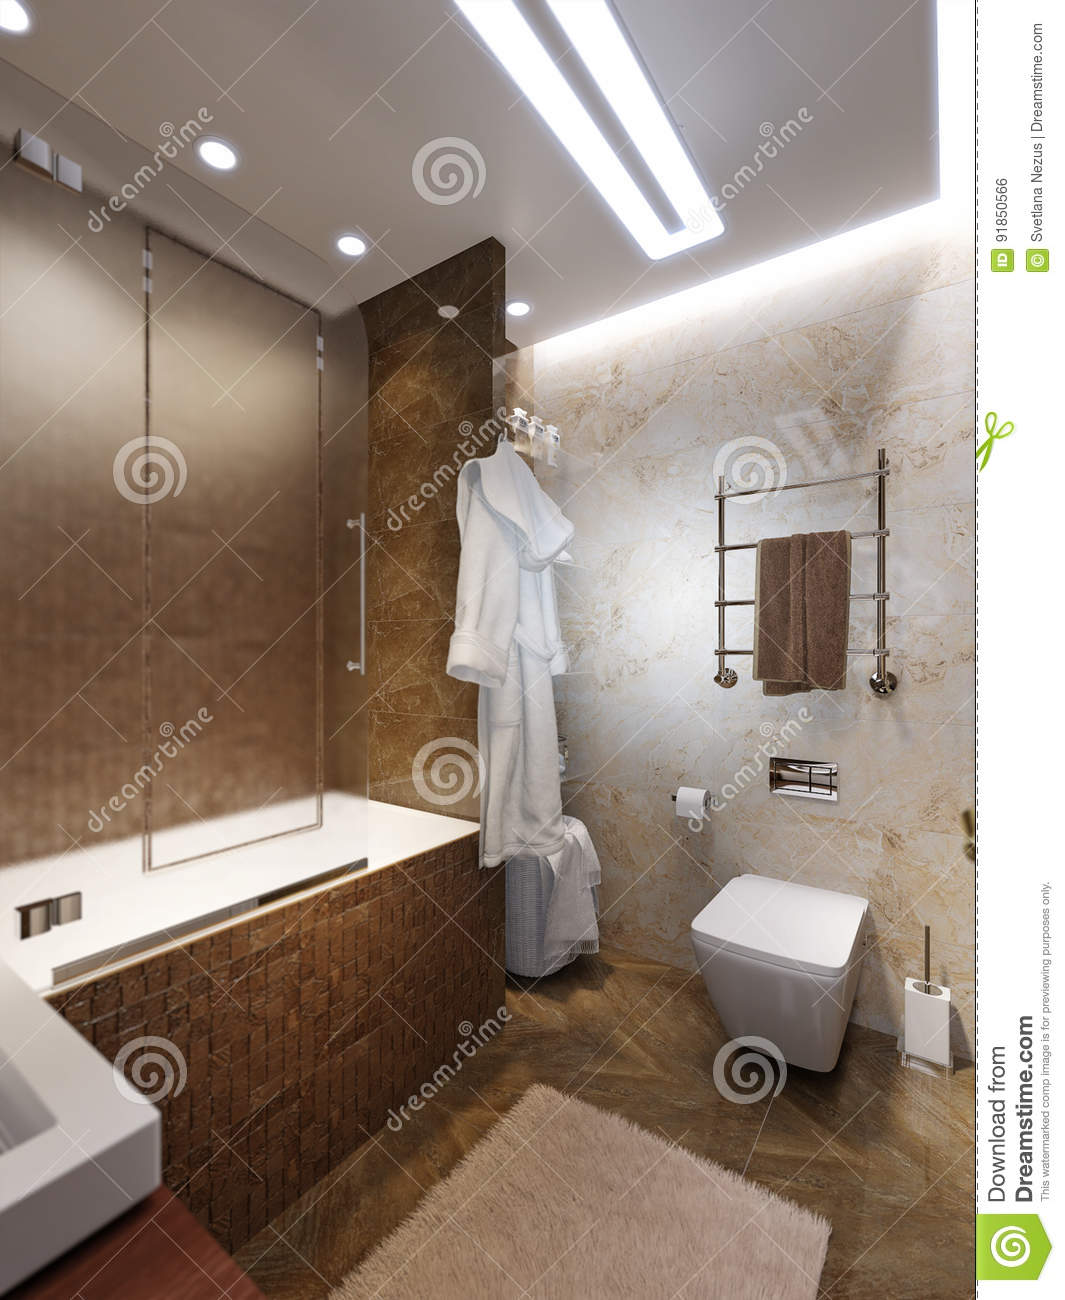 Modern Bathroom Interior Design With Brown And Beige Marble Tile